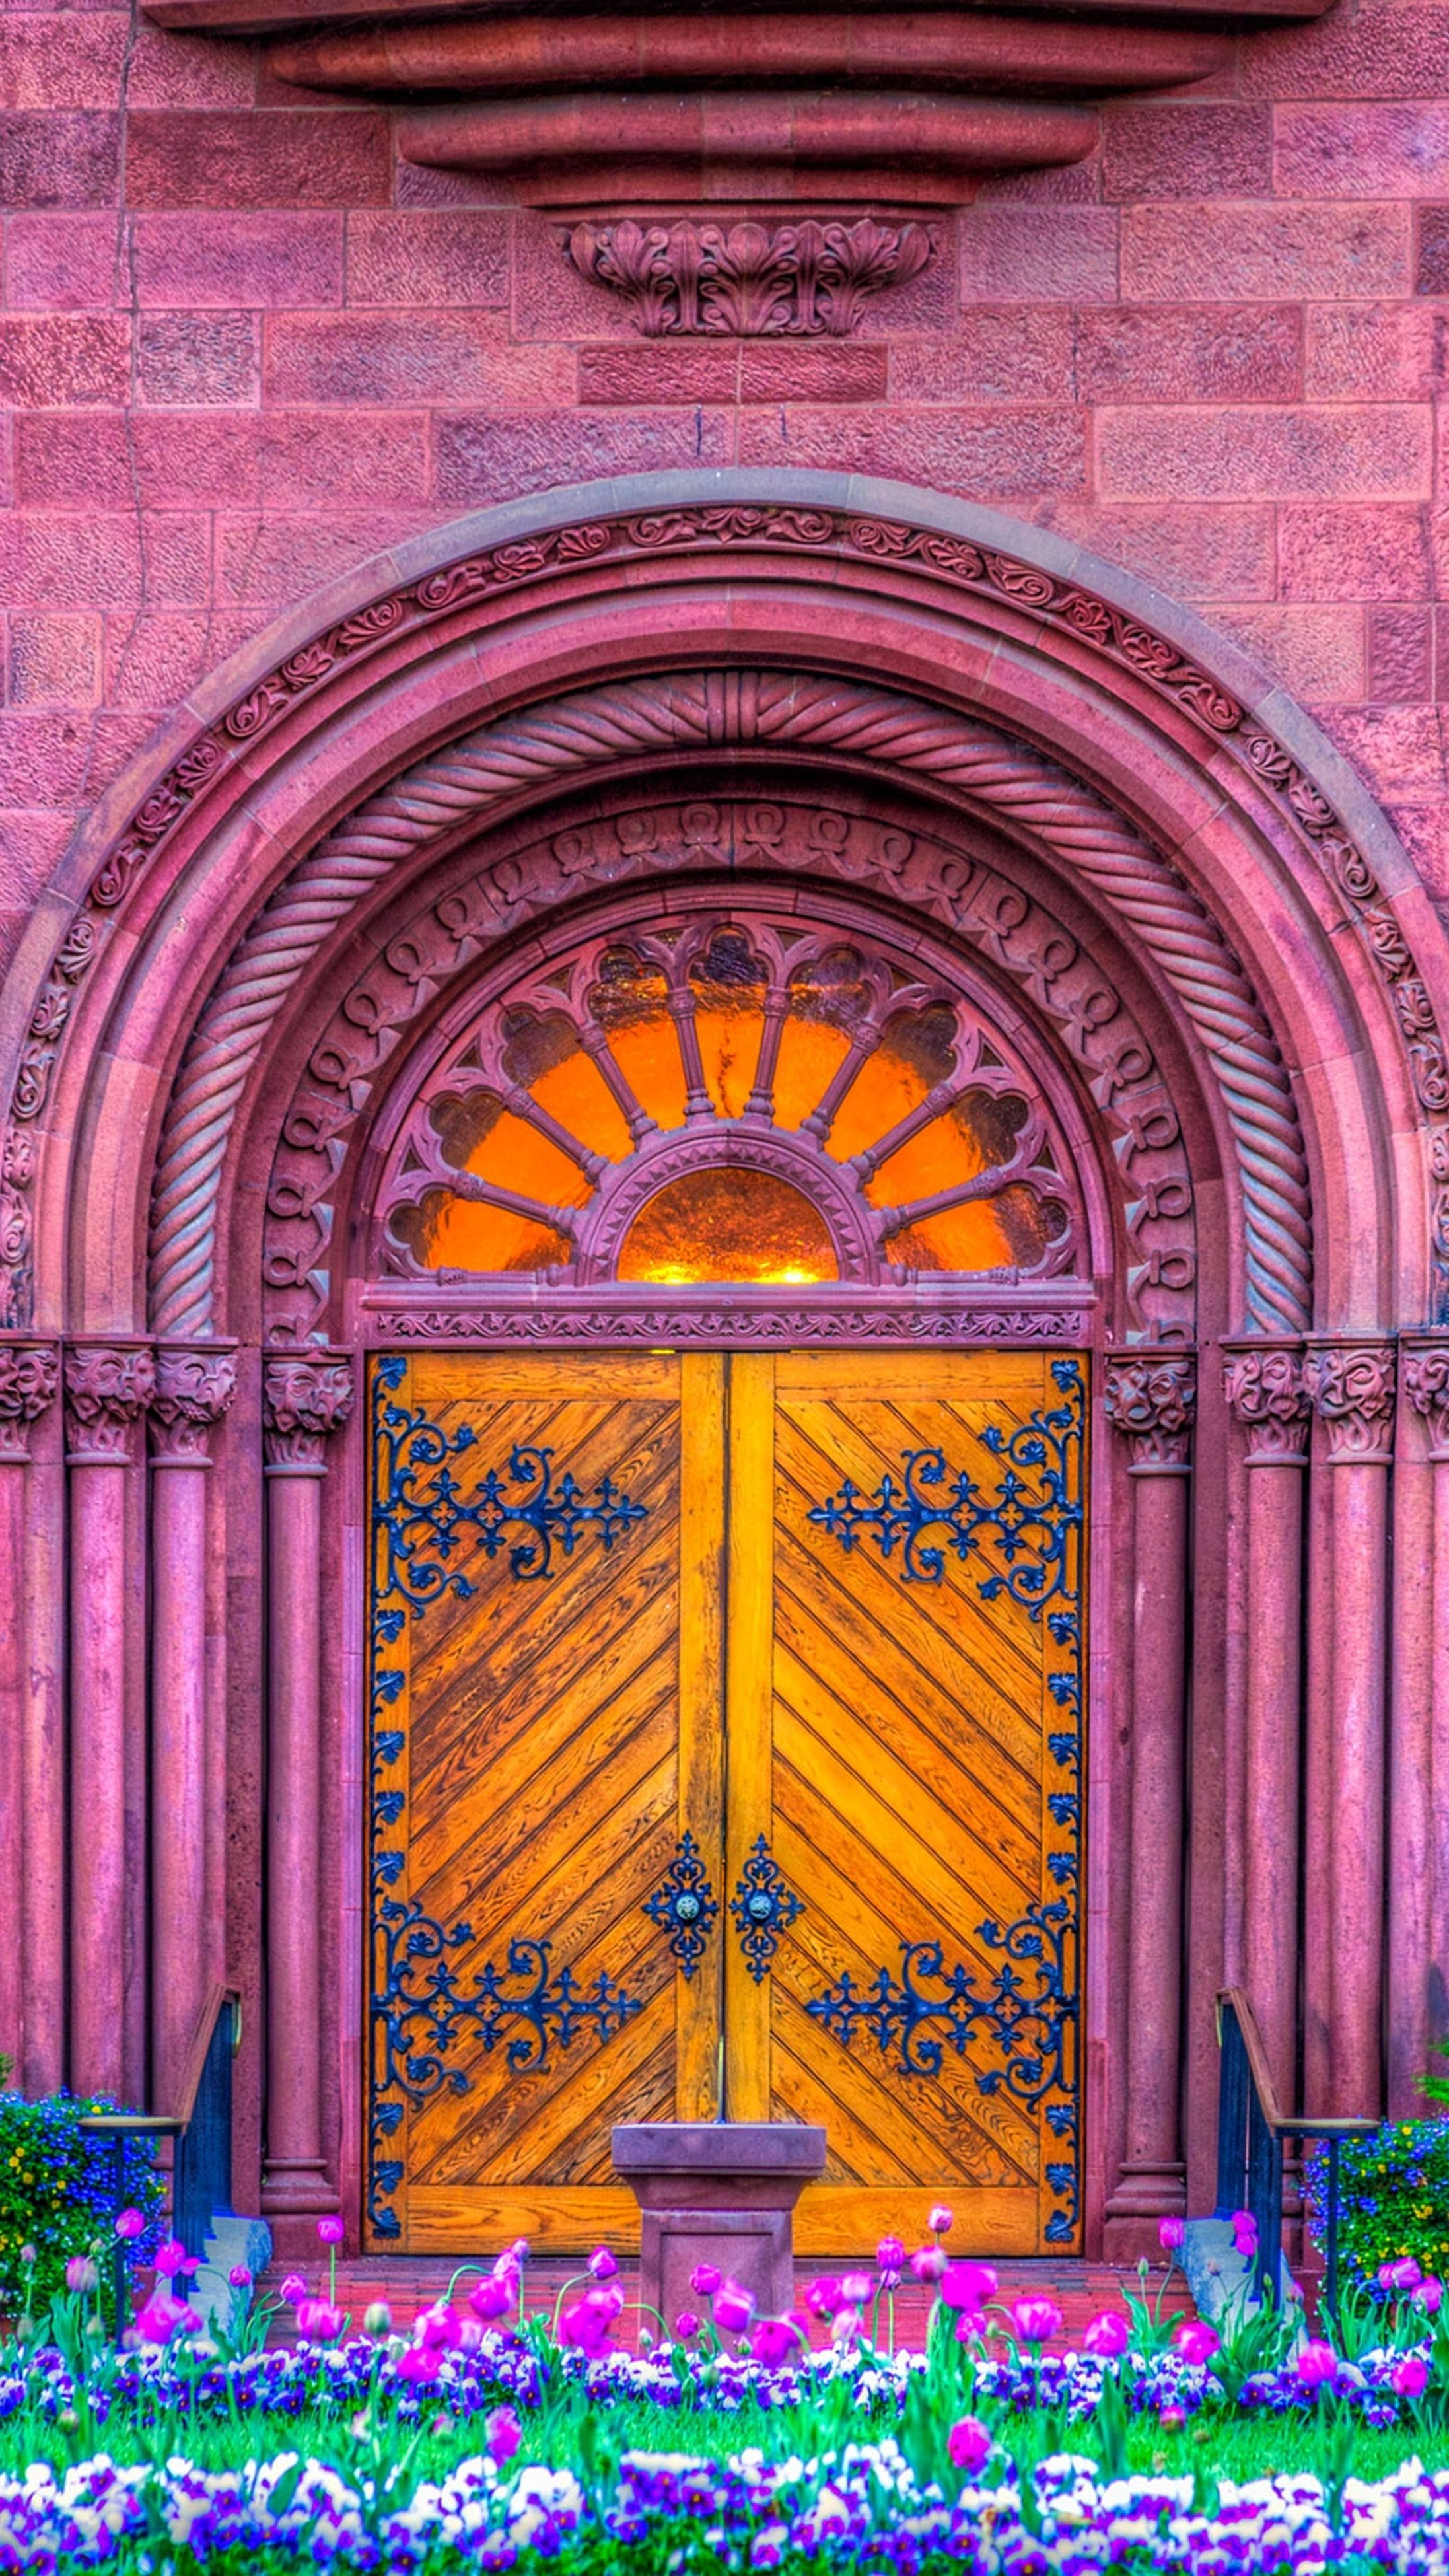 architecture, built structure, building exterior, religion, multi colored, place of worship, flower, art and craft, art, arch, spirituality, creativity, church, ornate, door, yellow, design, entrance, day